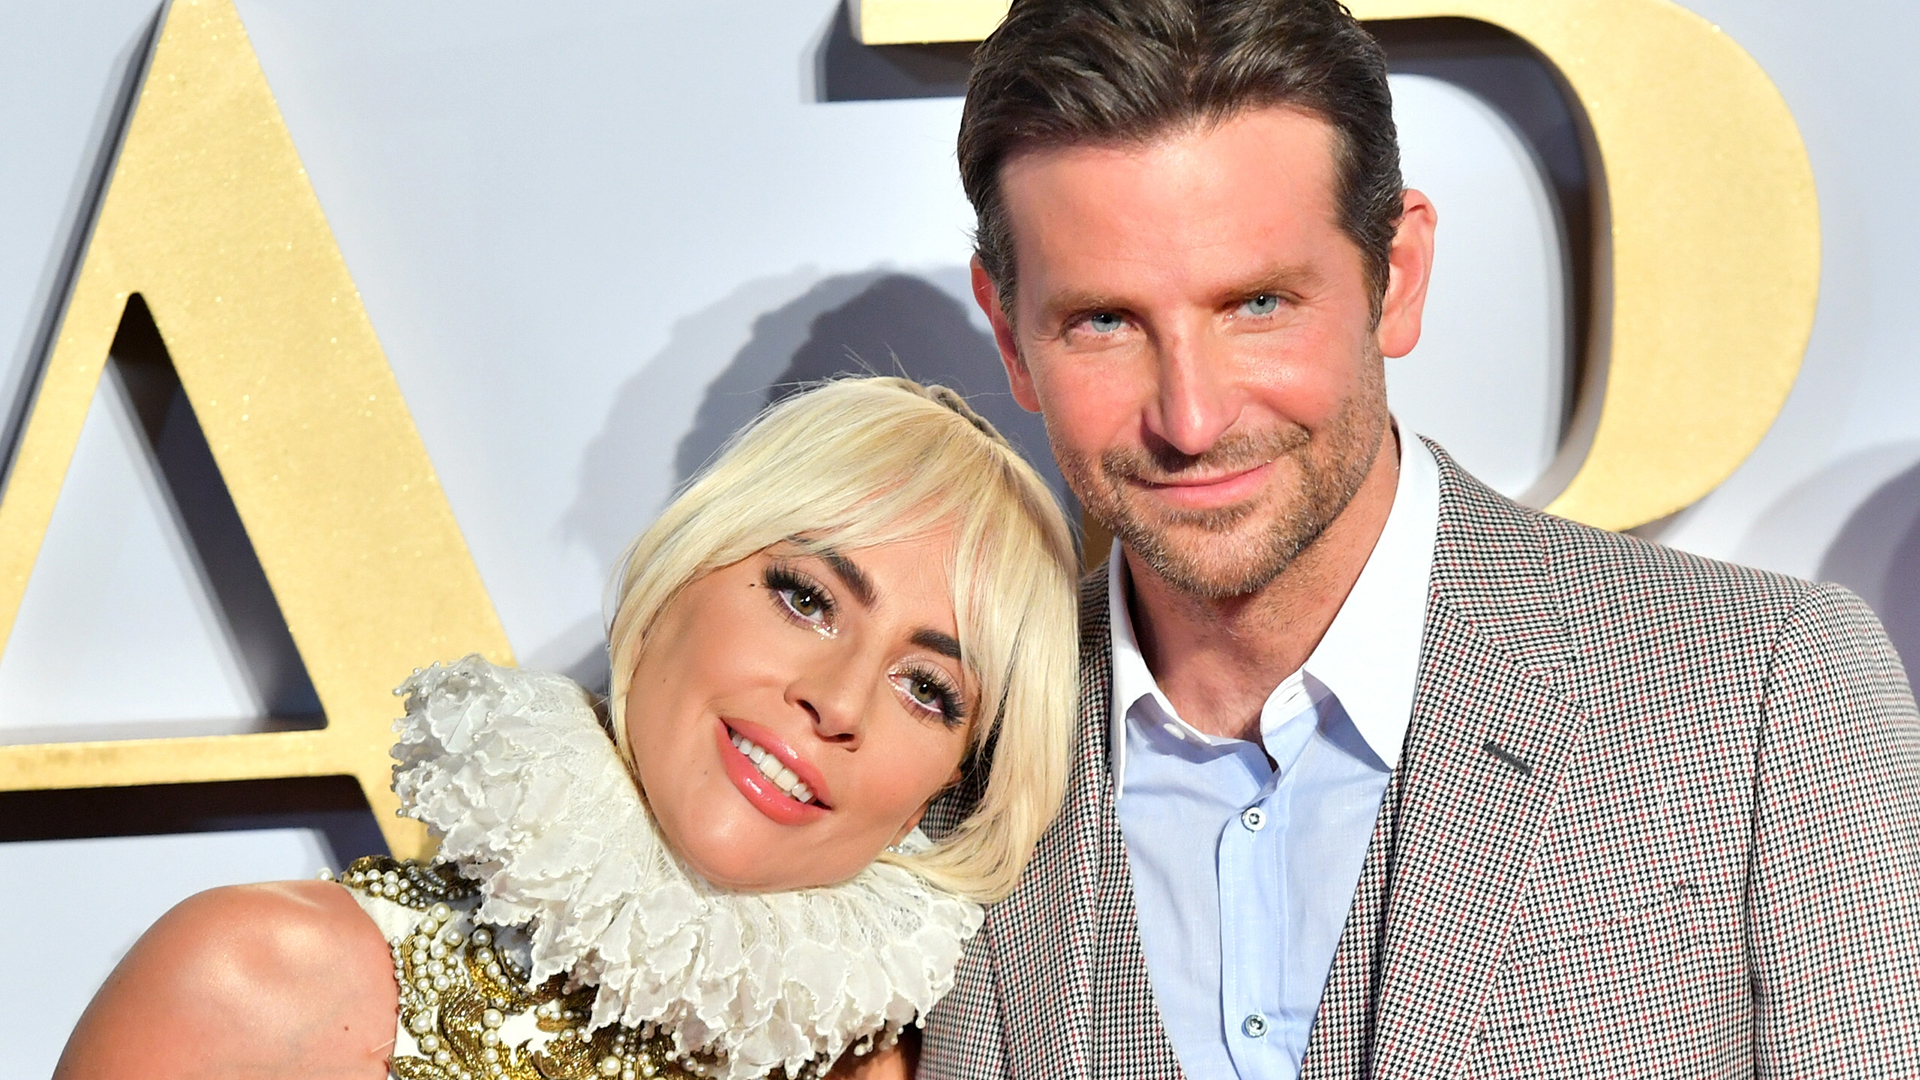 Lady Gaga Bradley Cooper S Secret Meet Up Isn T Quite What You Think Stylecaster